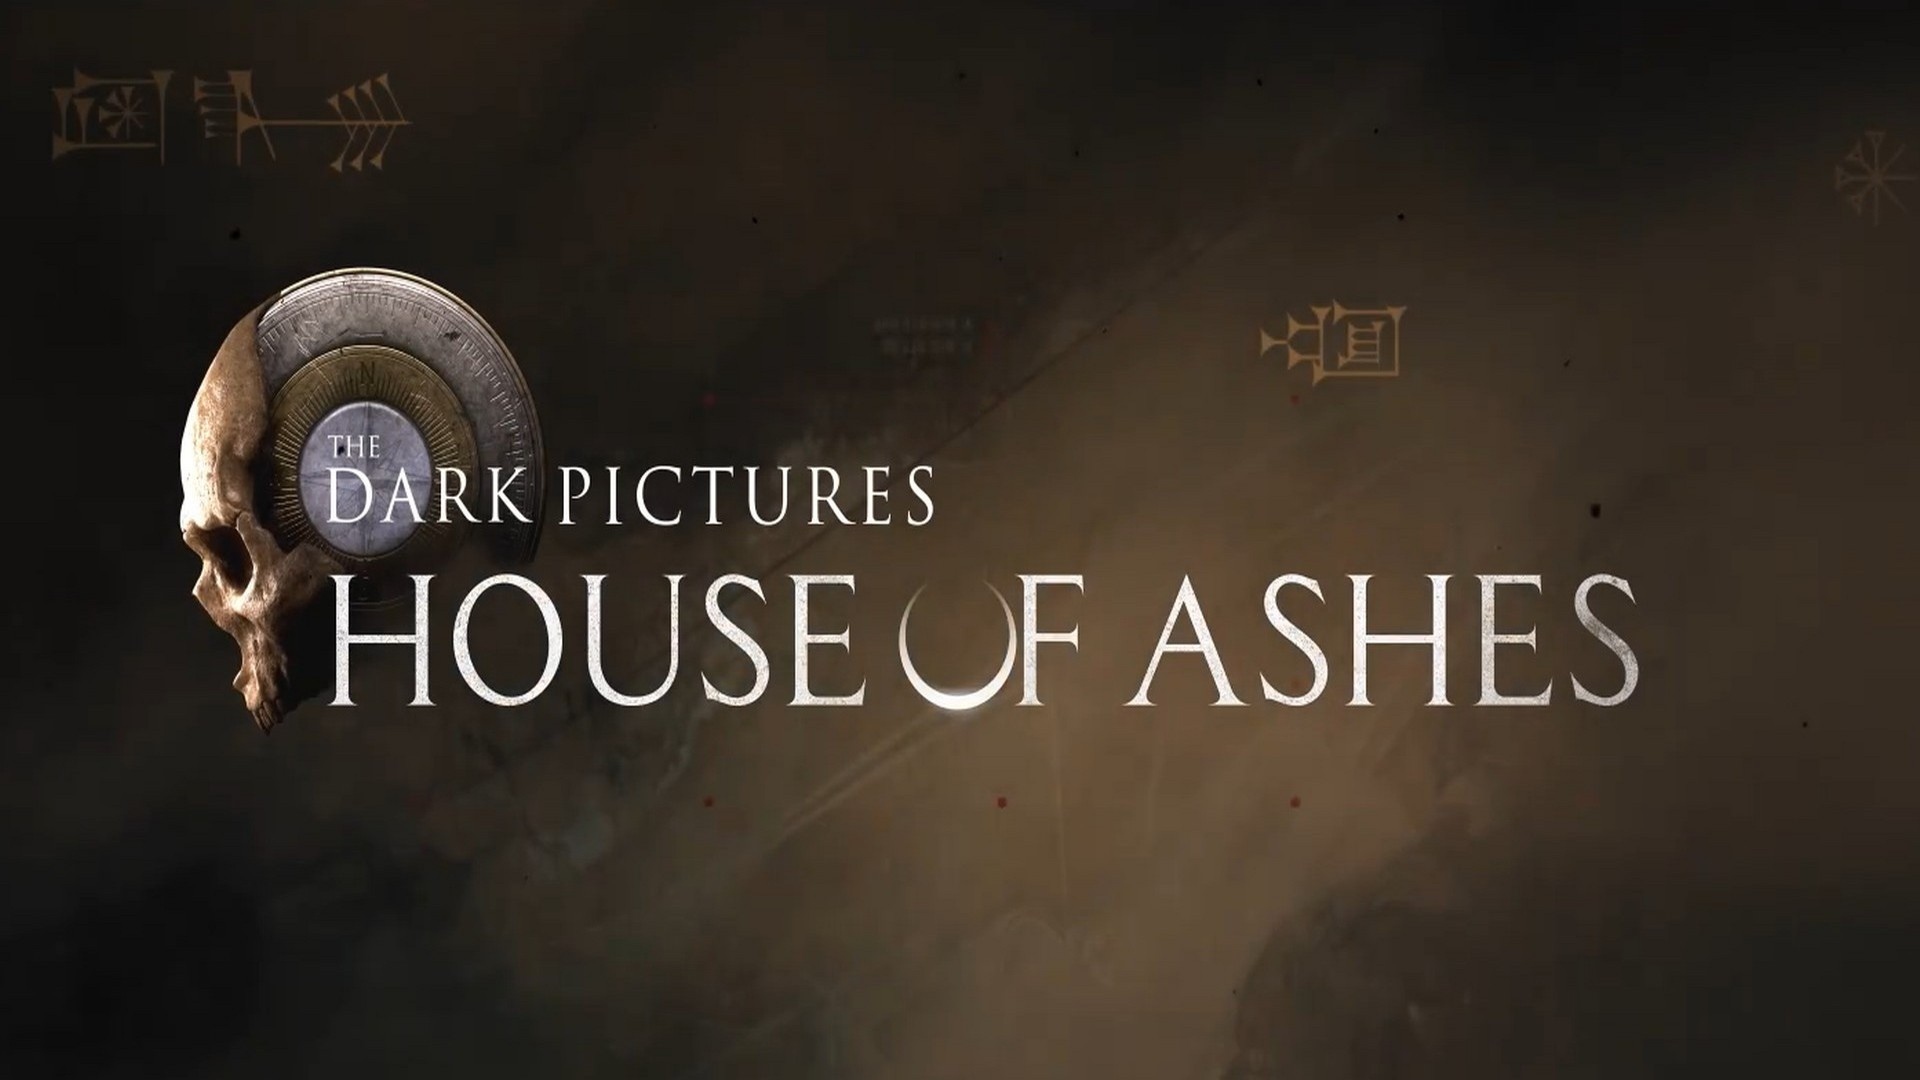 The Threat Is Closing In With Dark Pictures House of Ashes Gameplay Reveal Live Now